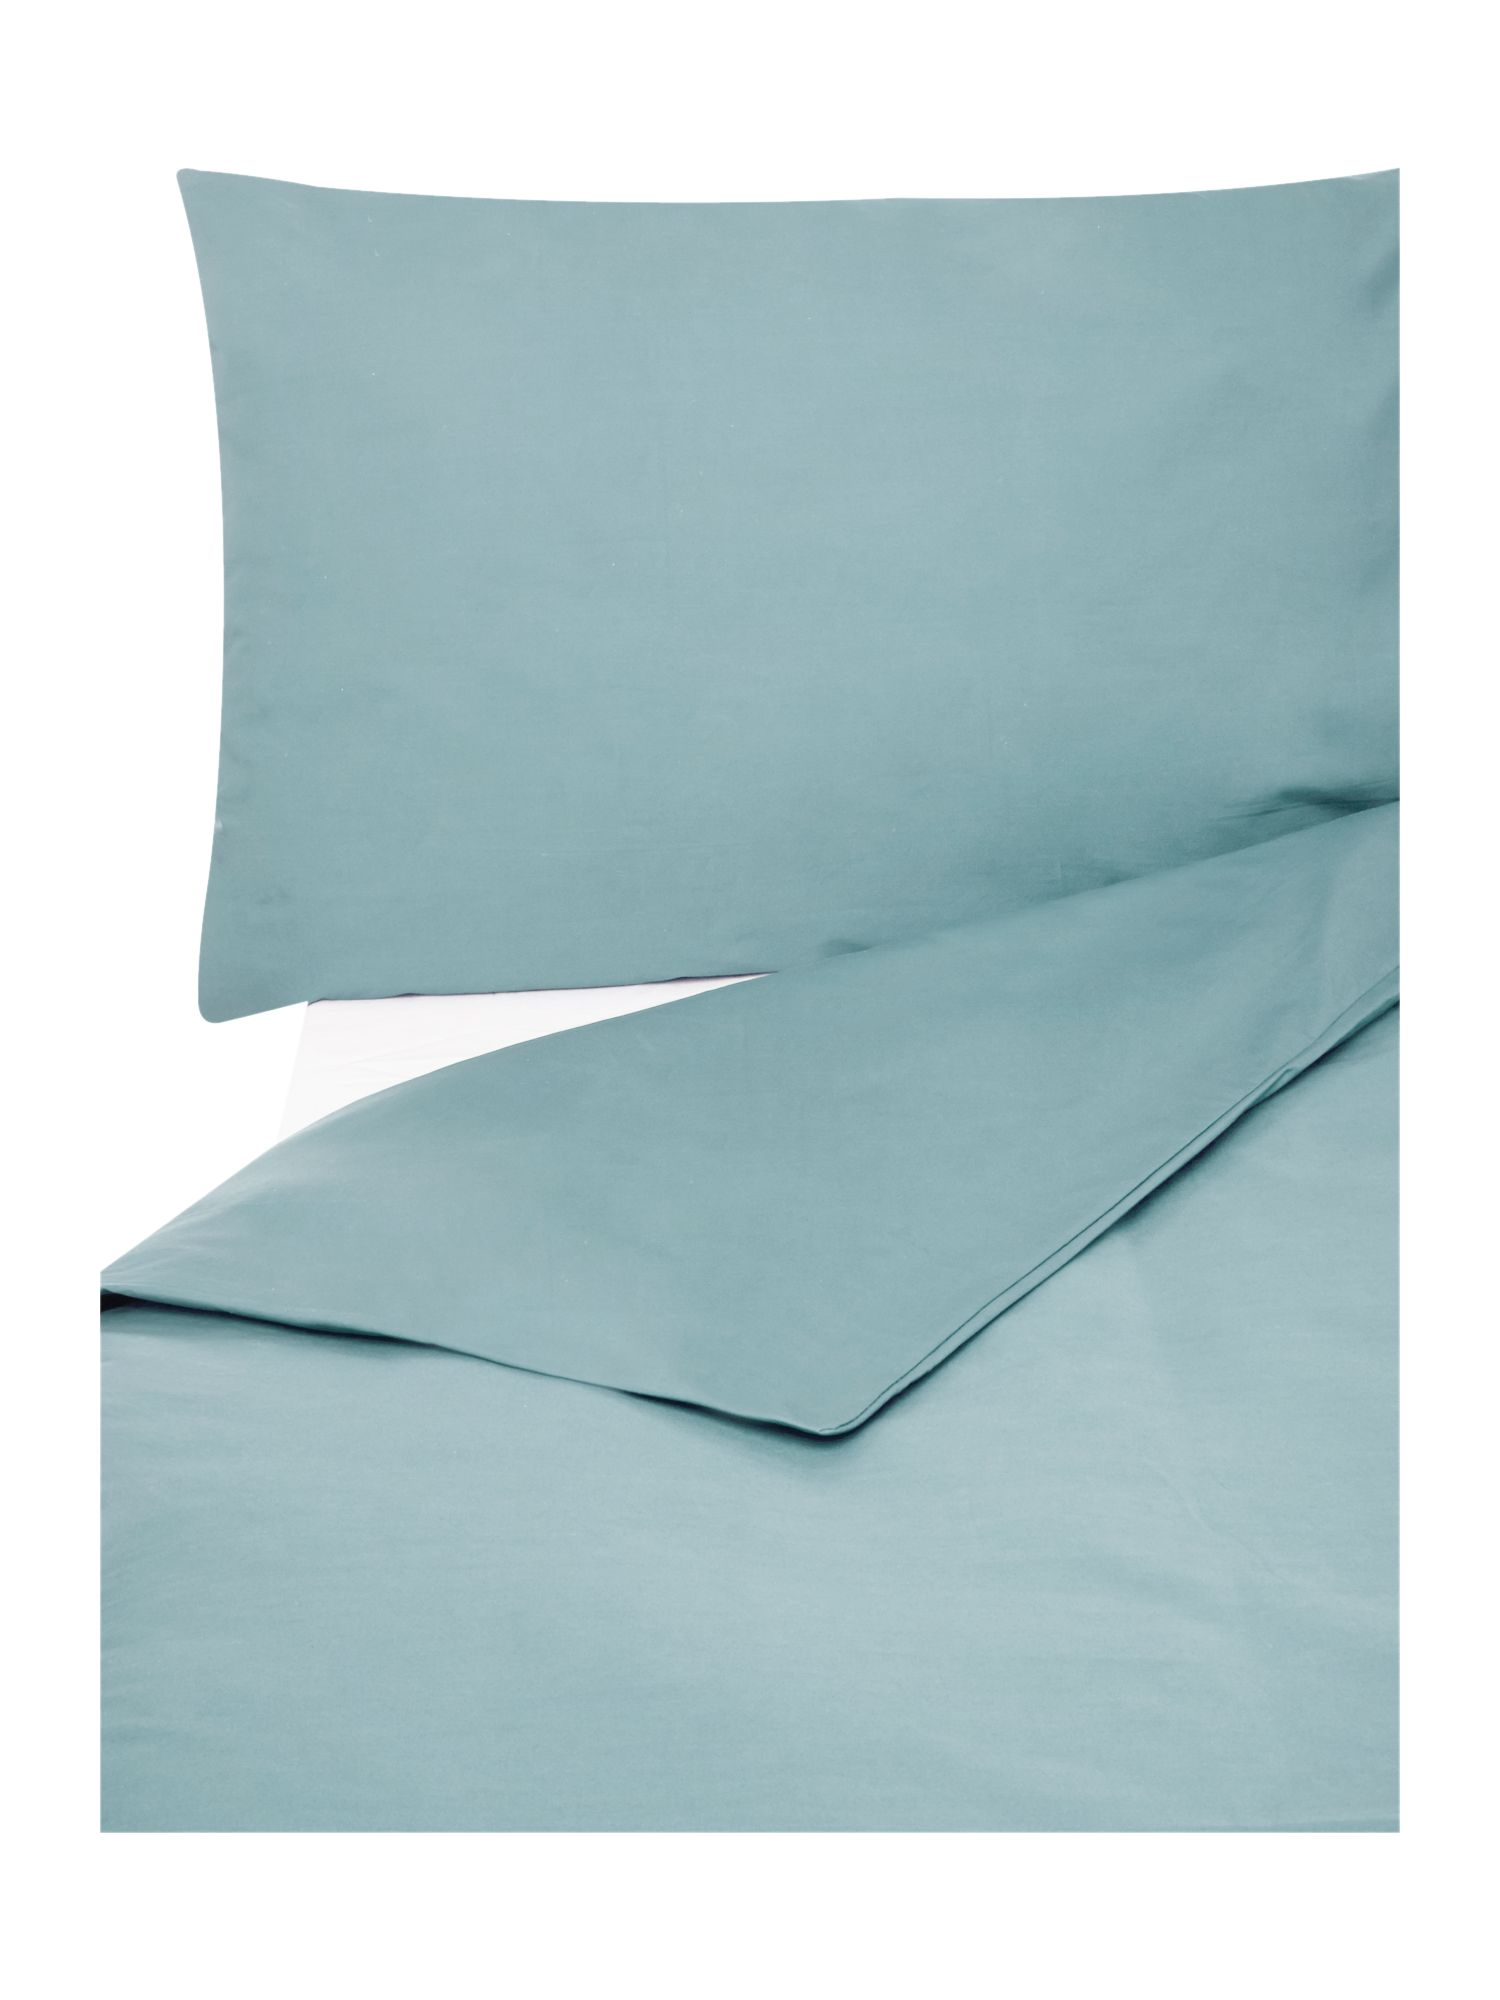 Egyptian cotton bedding range in duckegg